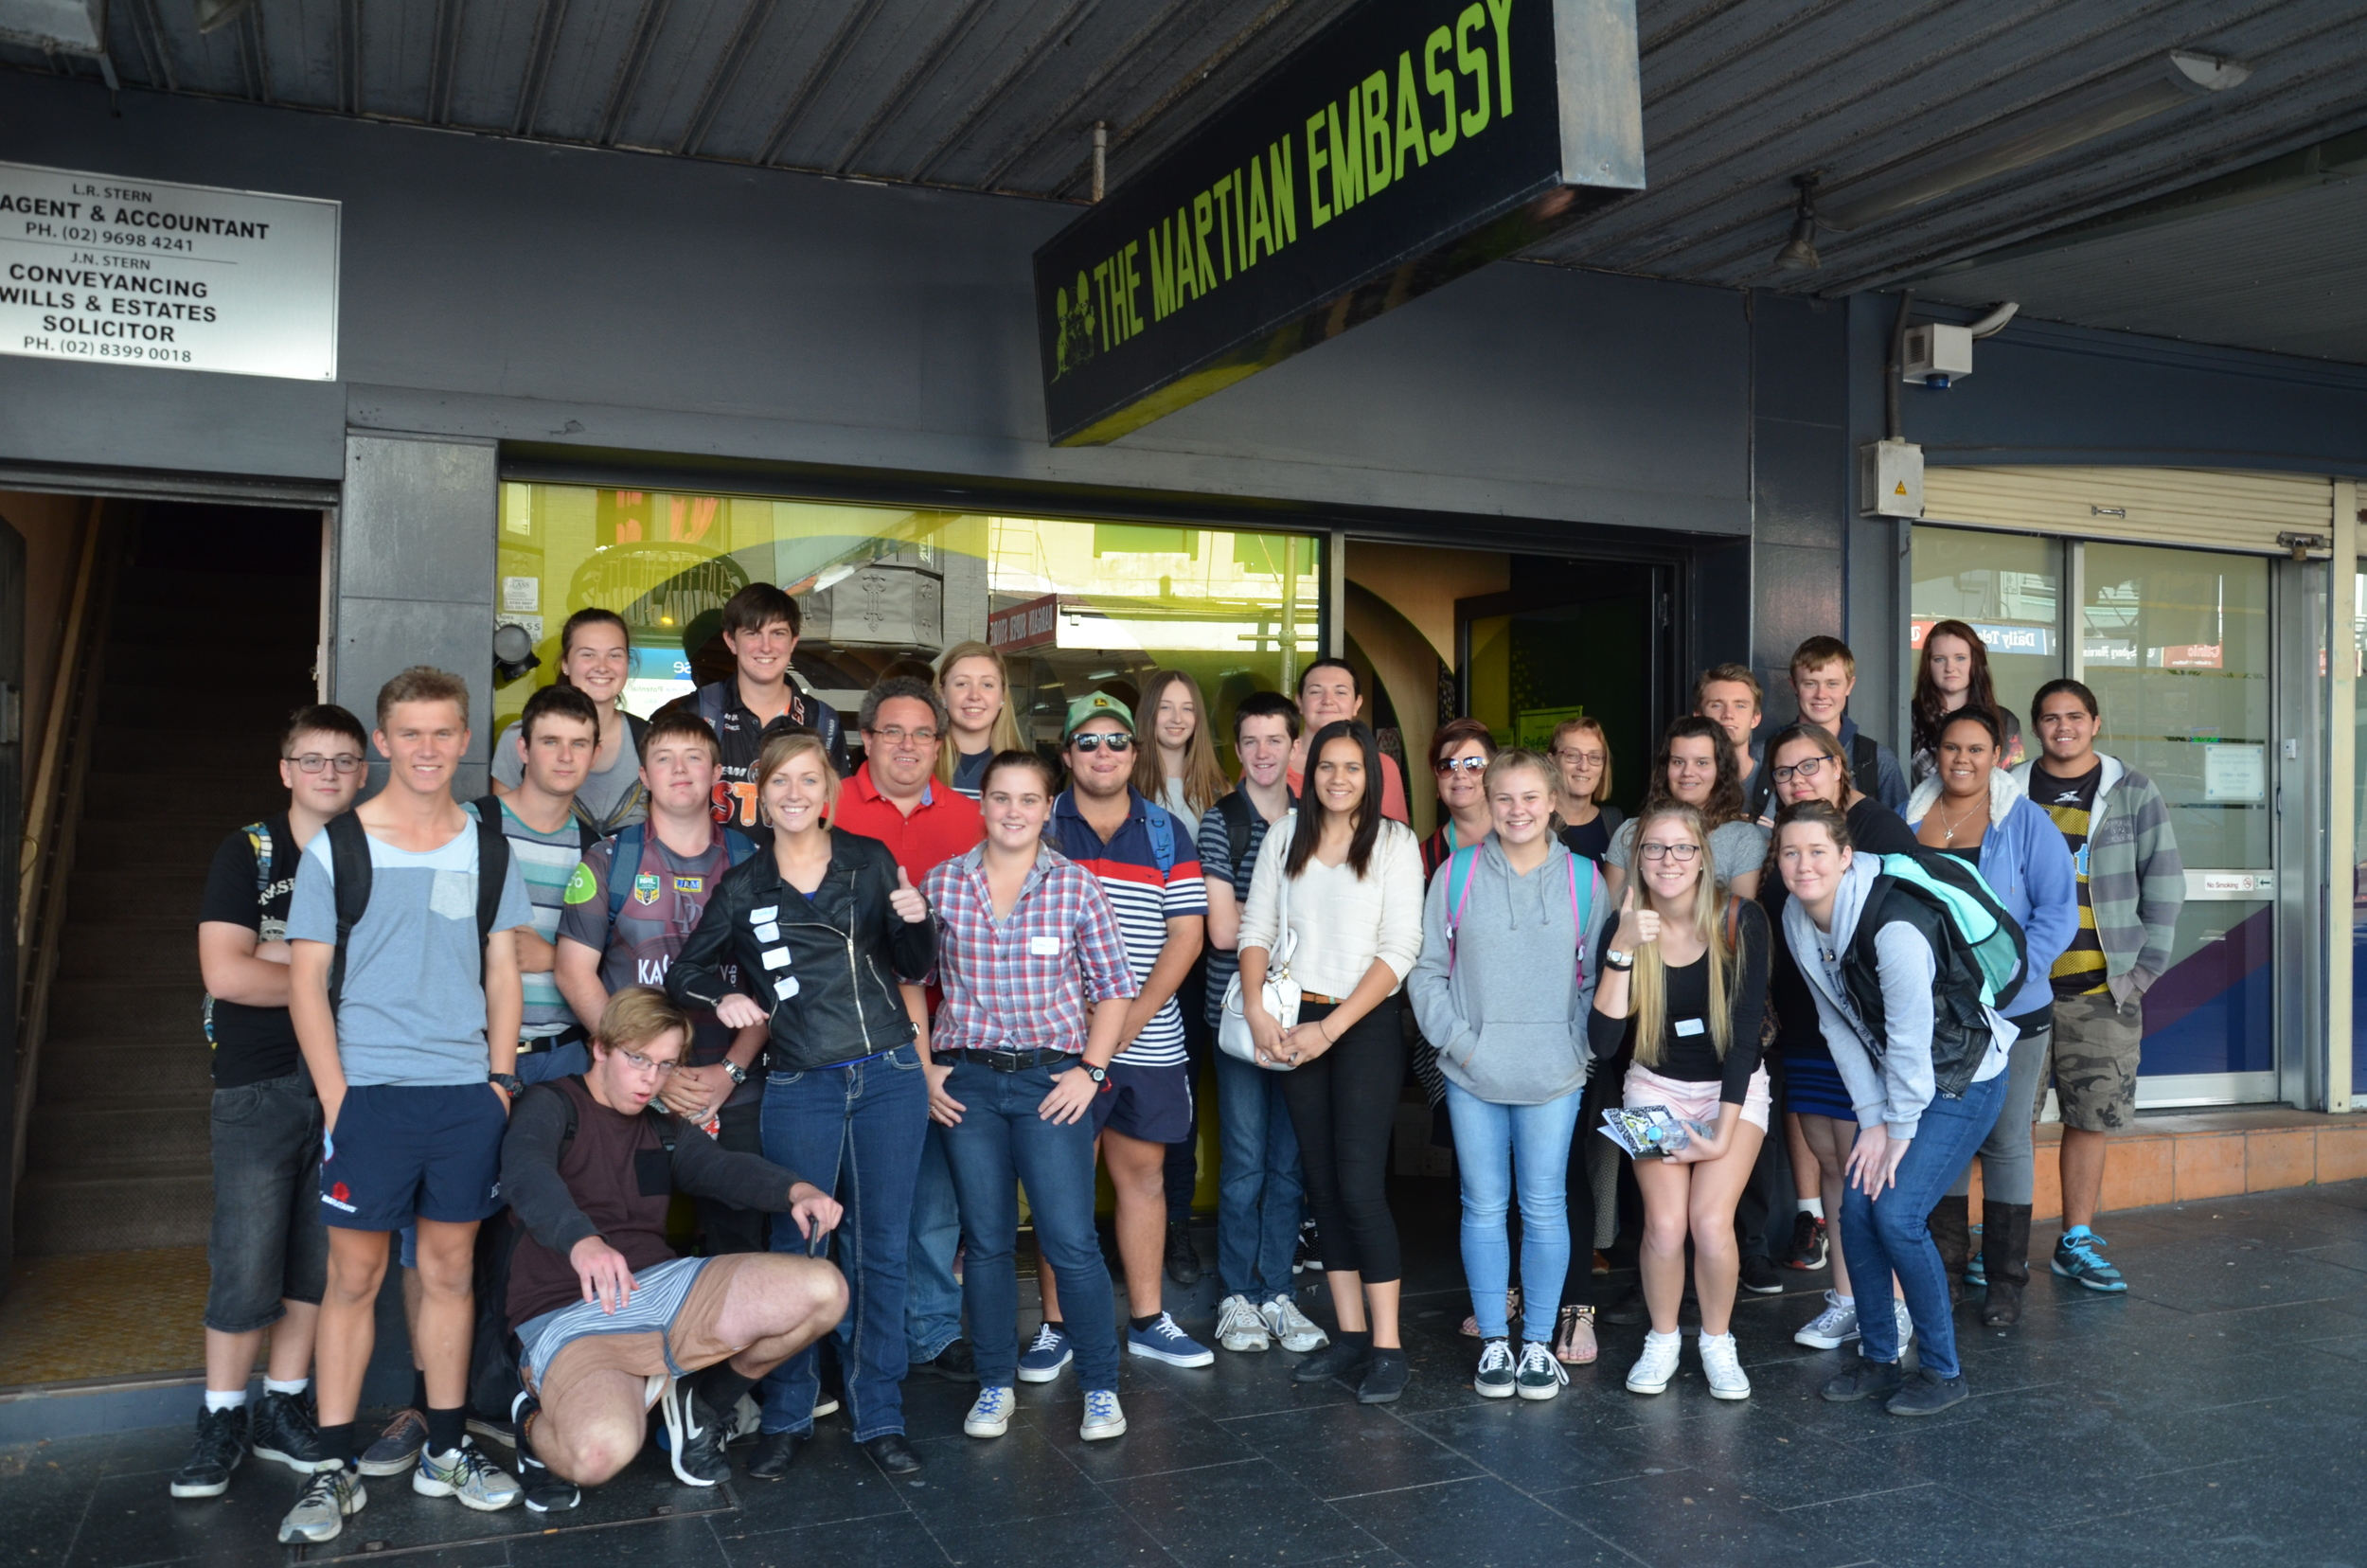 The Wee Waa group outside the Story Factory in Redfern. Looking good, Nathan.